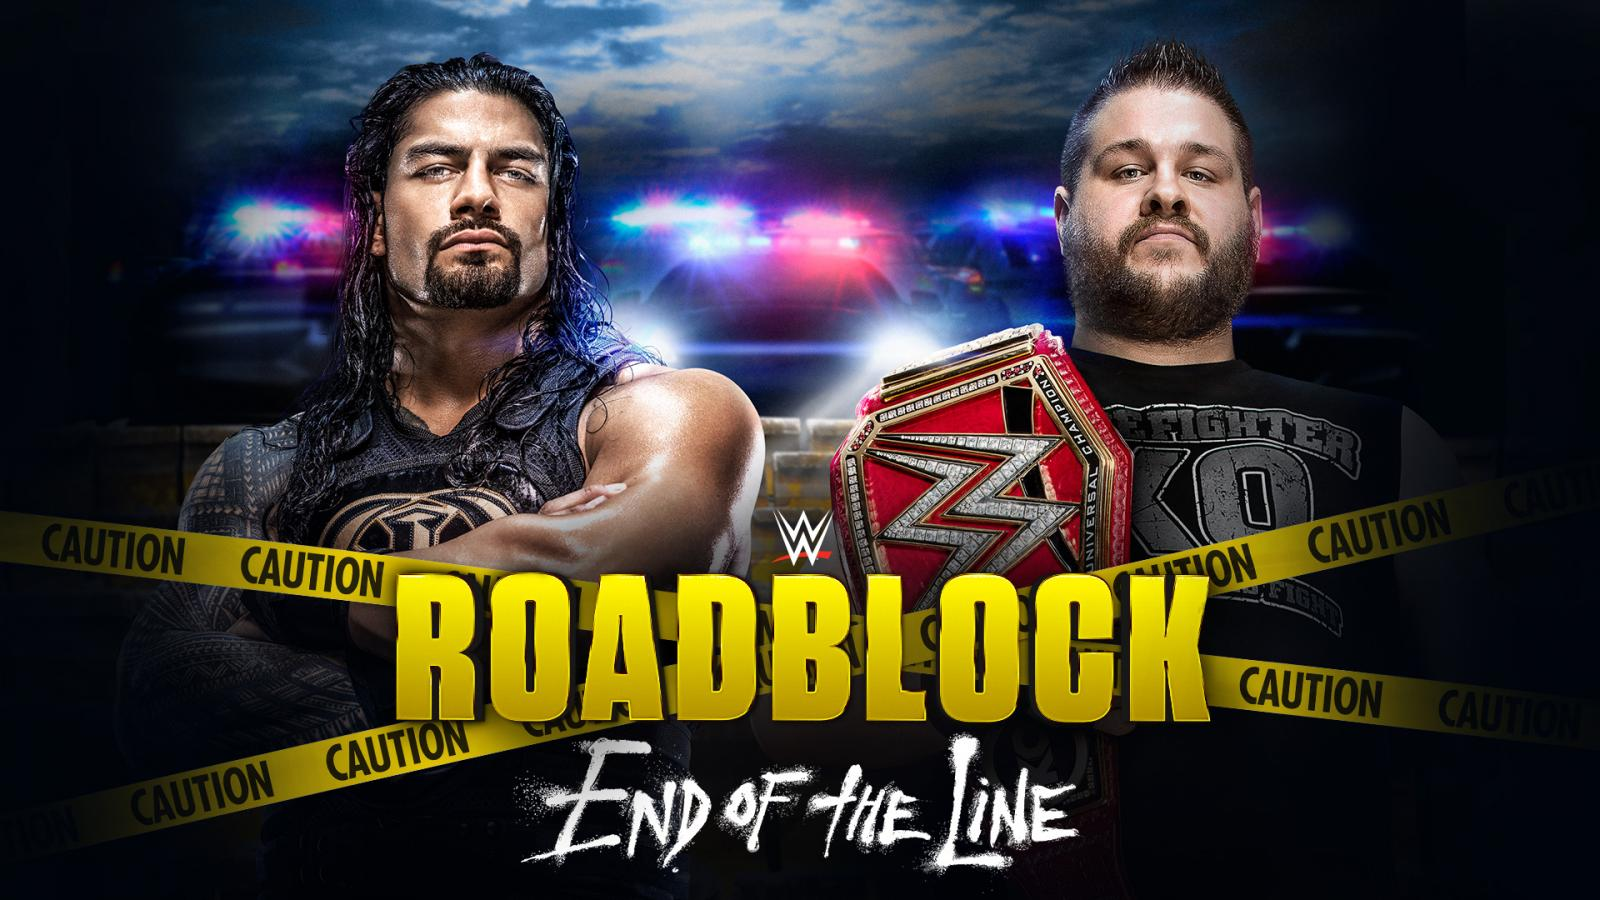 WWE Roadblock: End of Line Predictions